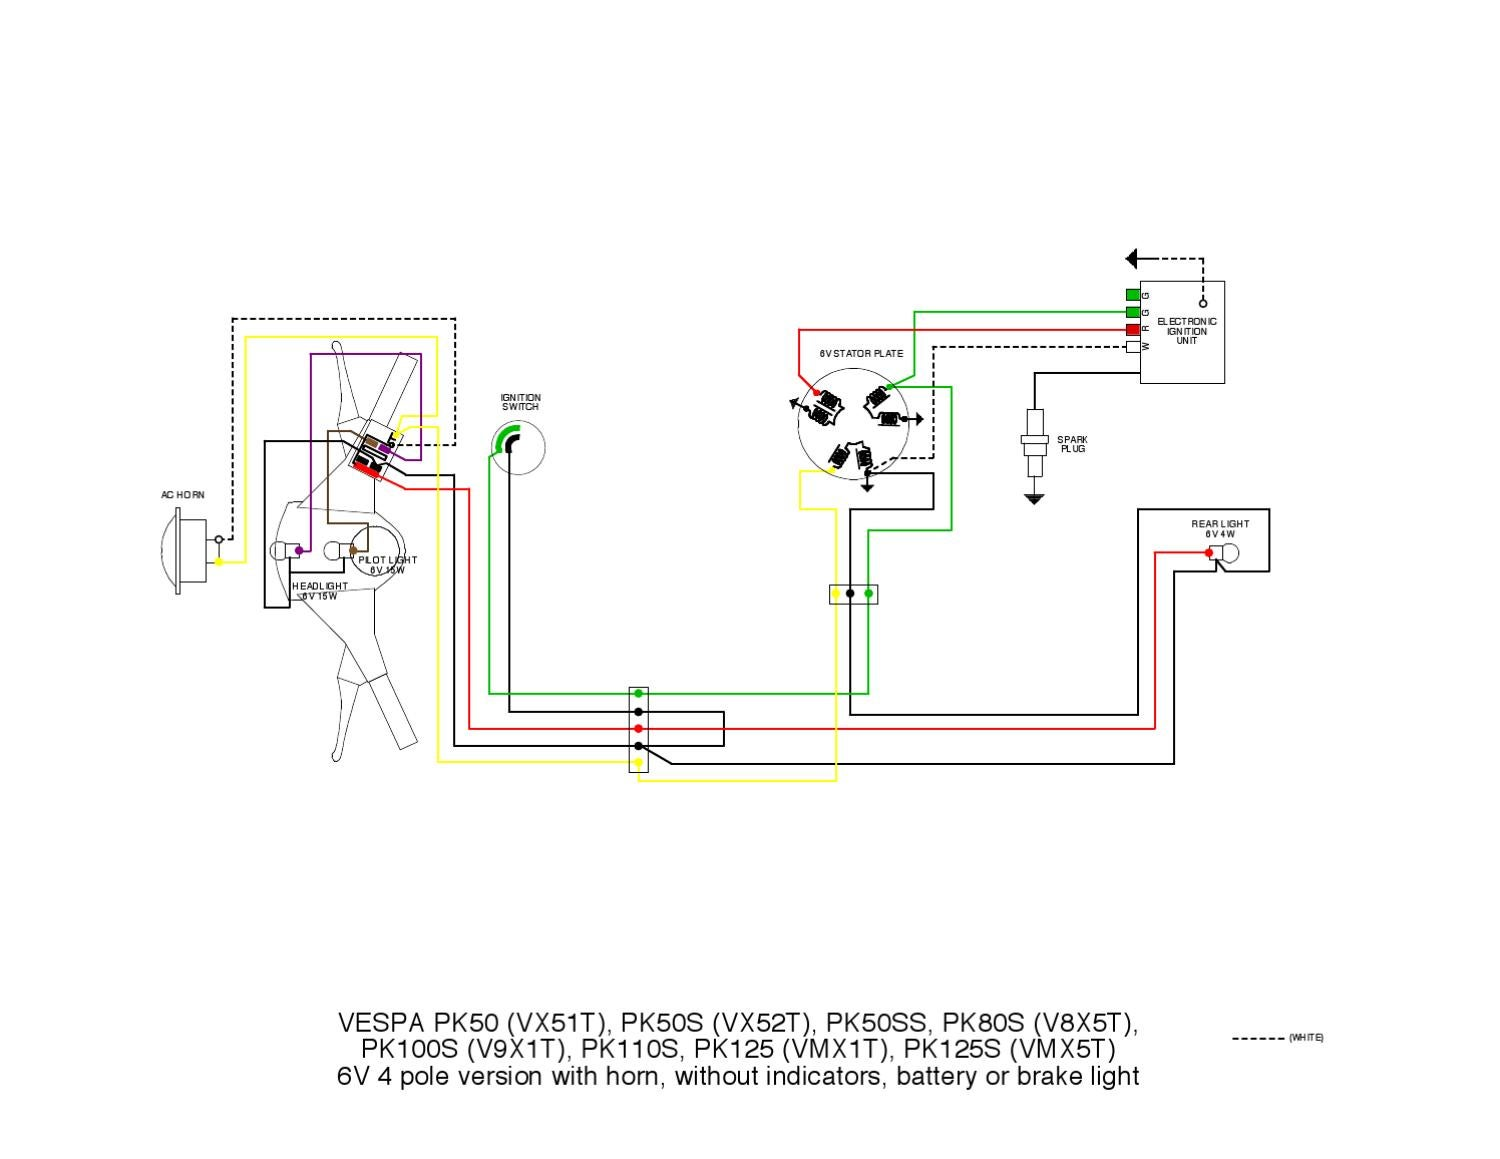 7 pole wiring diagram for amp and speakers 1 light switch 120 vac